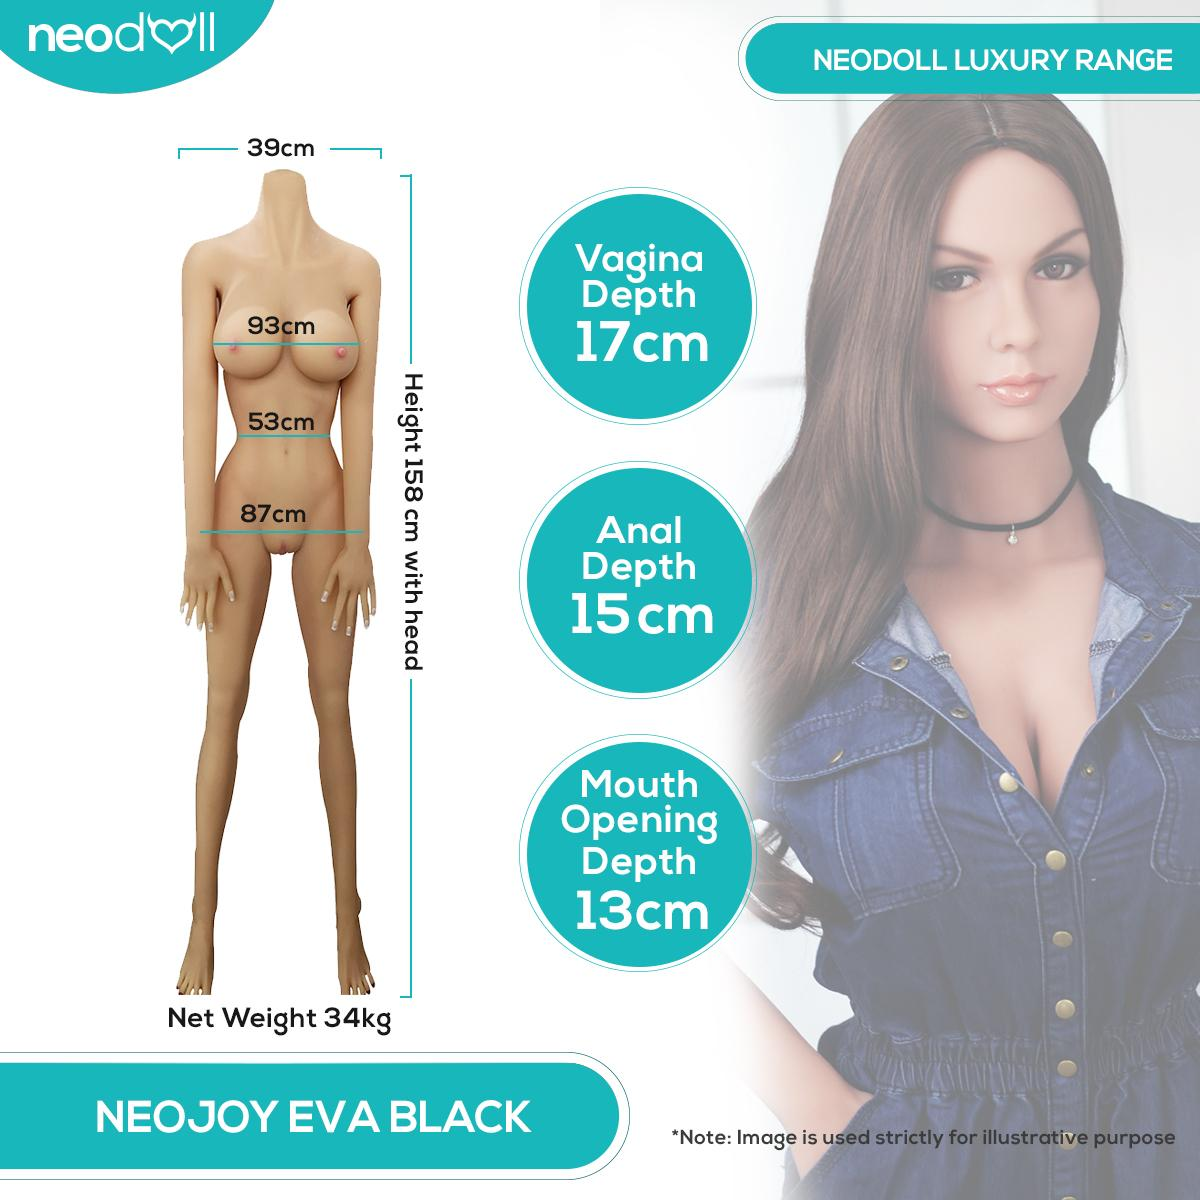 Neodoll Luxury Eva Black - Realistic Sex Doll - 158cm